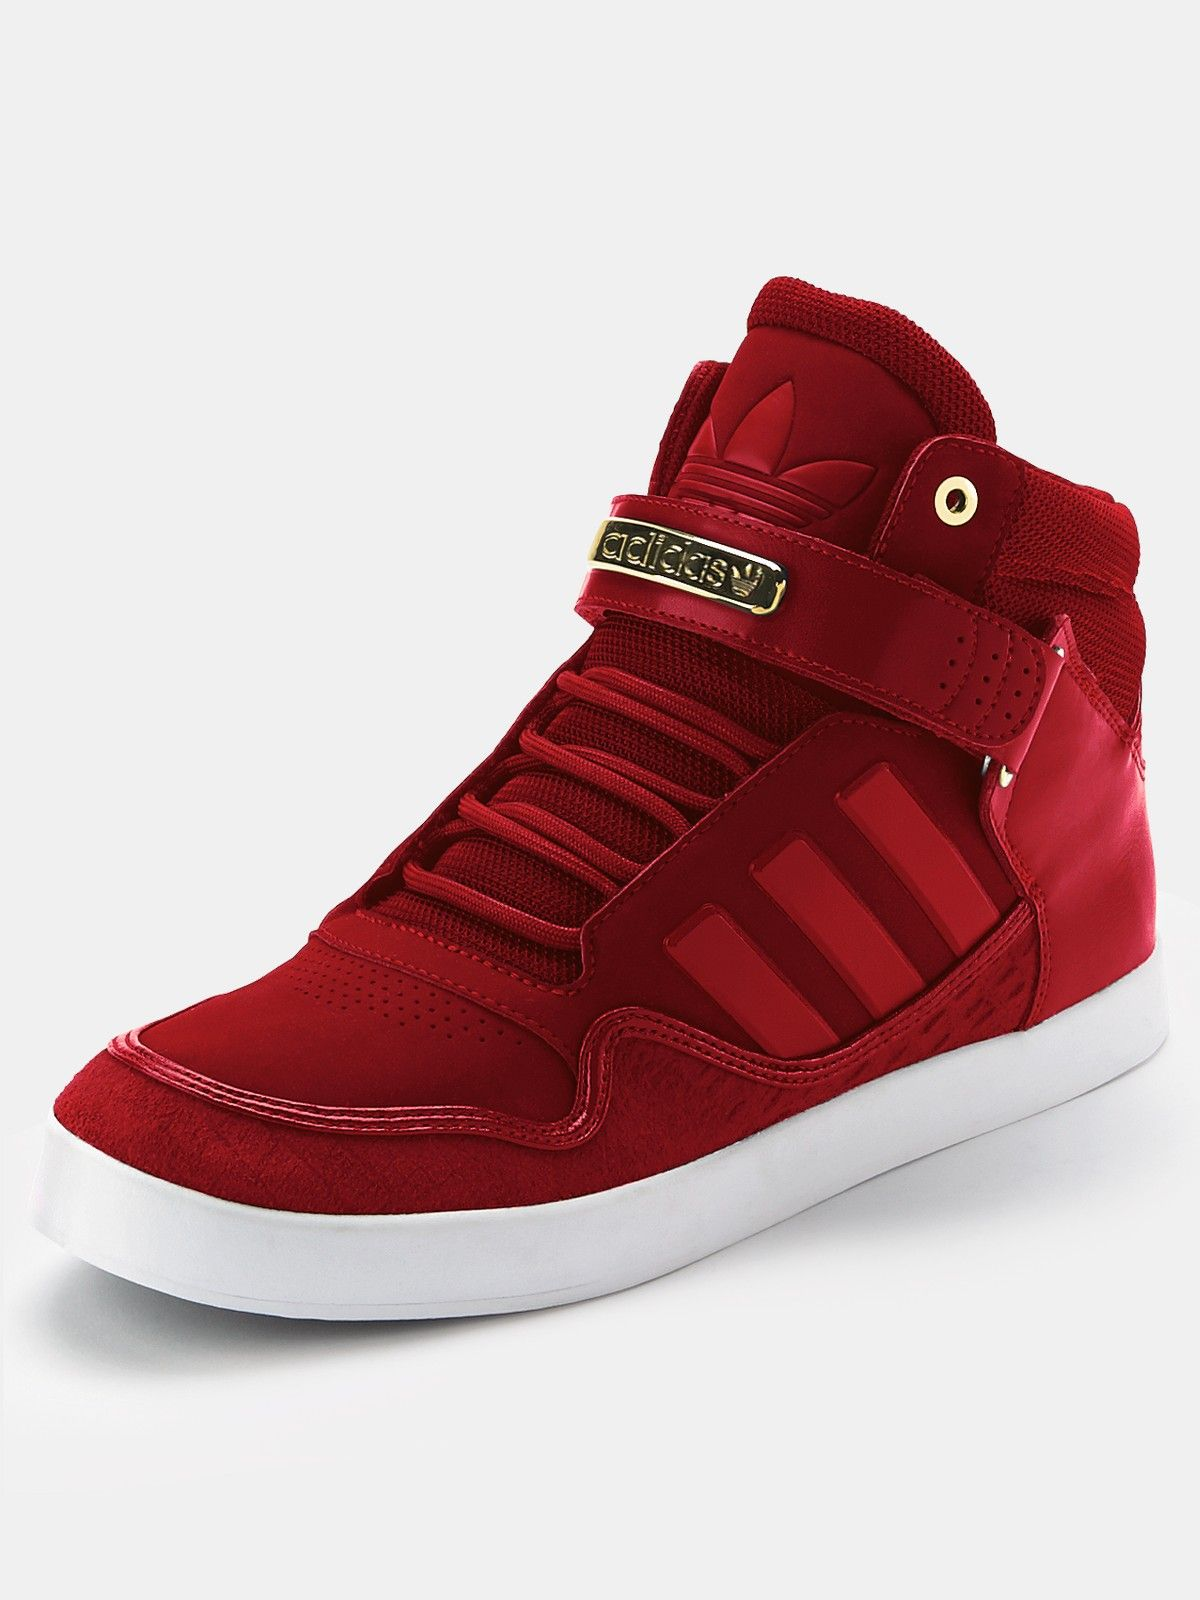 adidas Originals AdiRise 2.0 Hi Top Mens Trainers  3611530927